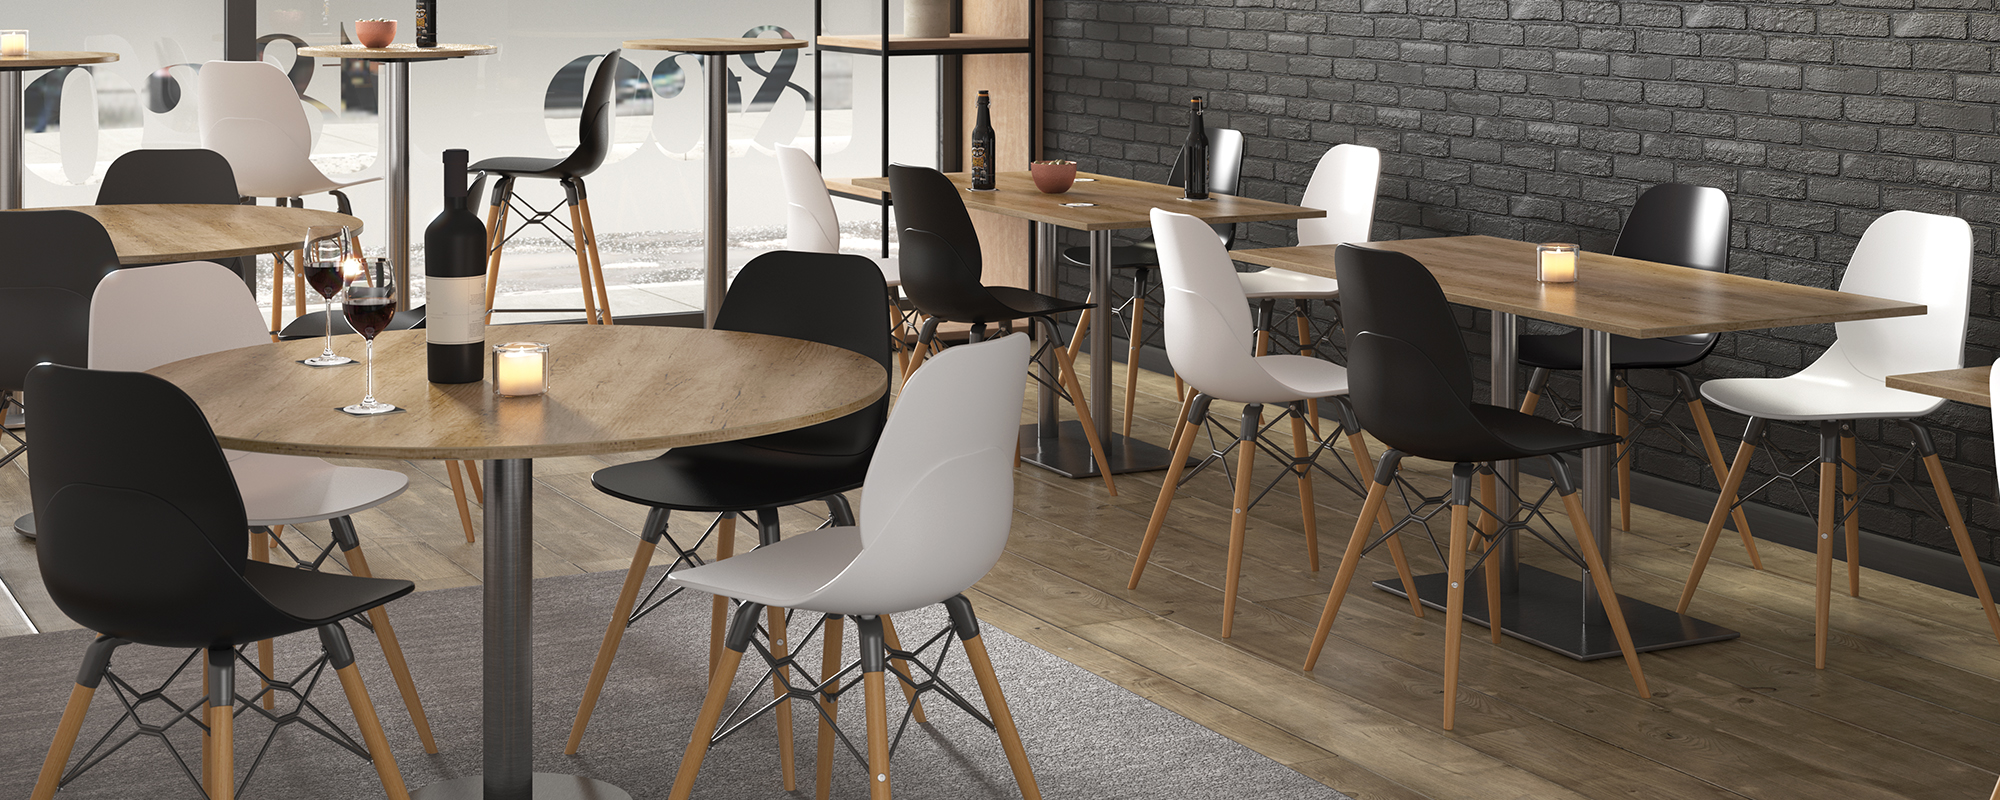 Commercial-Furniture